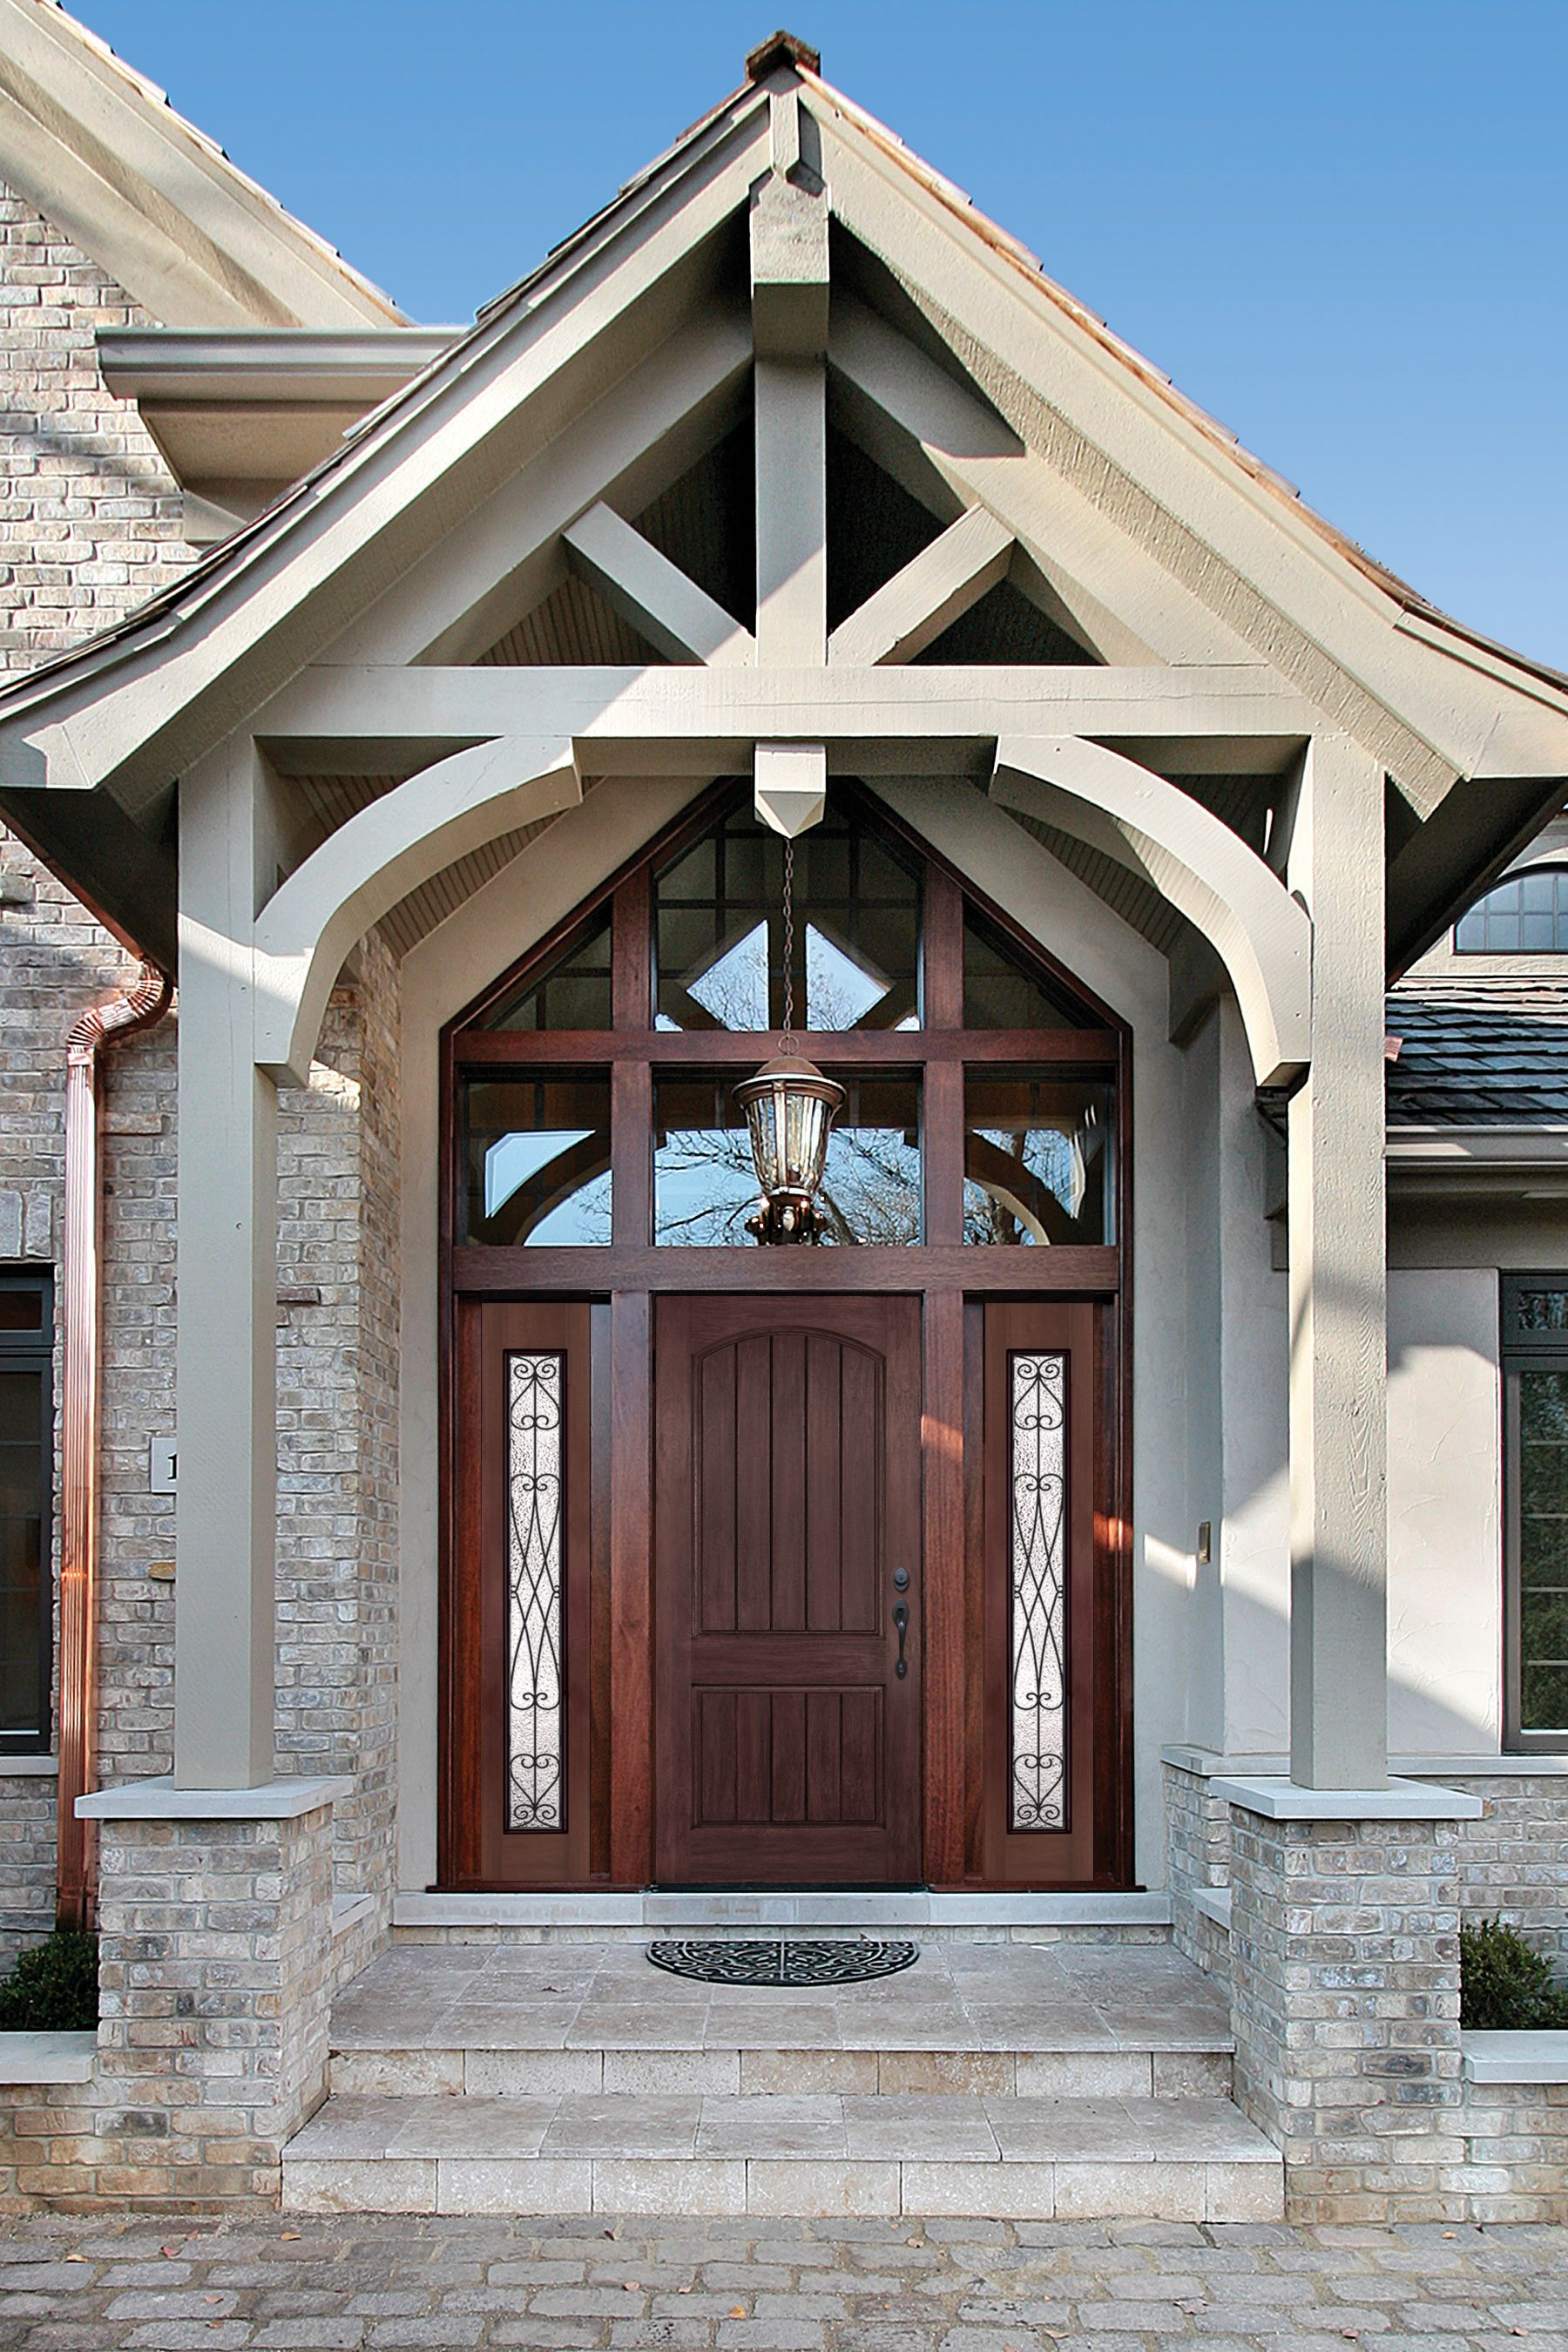 Builddirect American Door Company 36 X 96 Ph Stained Rustic 2 Panel Arch Top V Groove Fiberglass Door House Front House Exterior Exterior House Colors